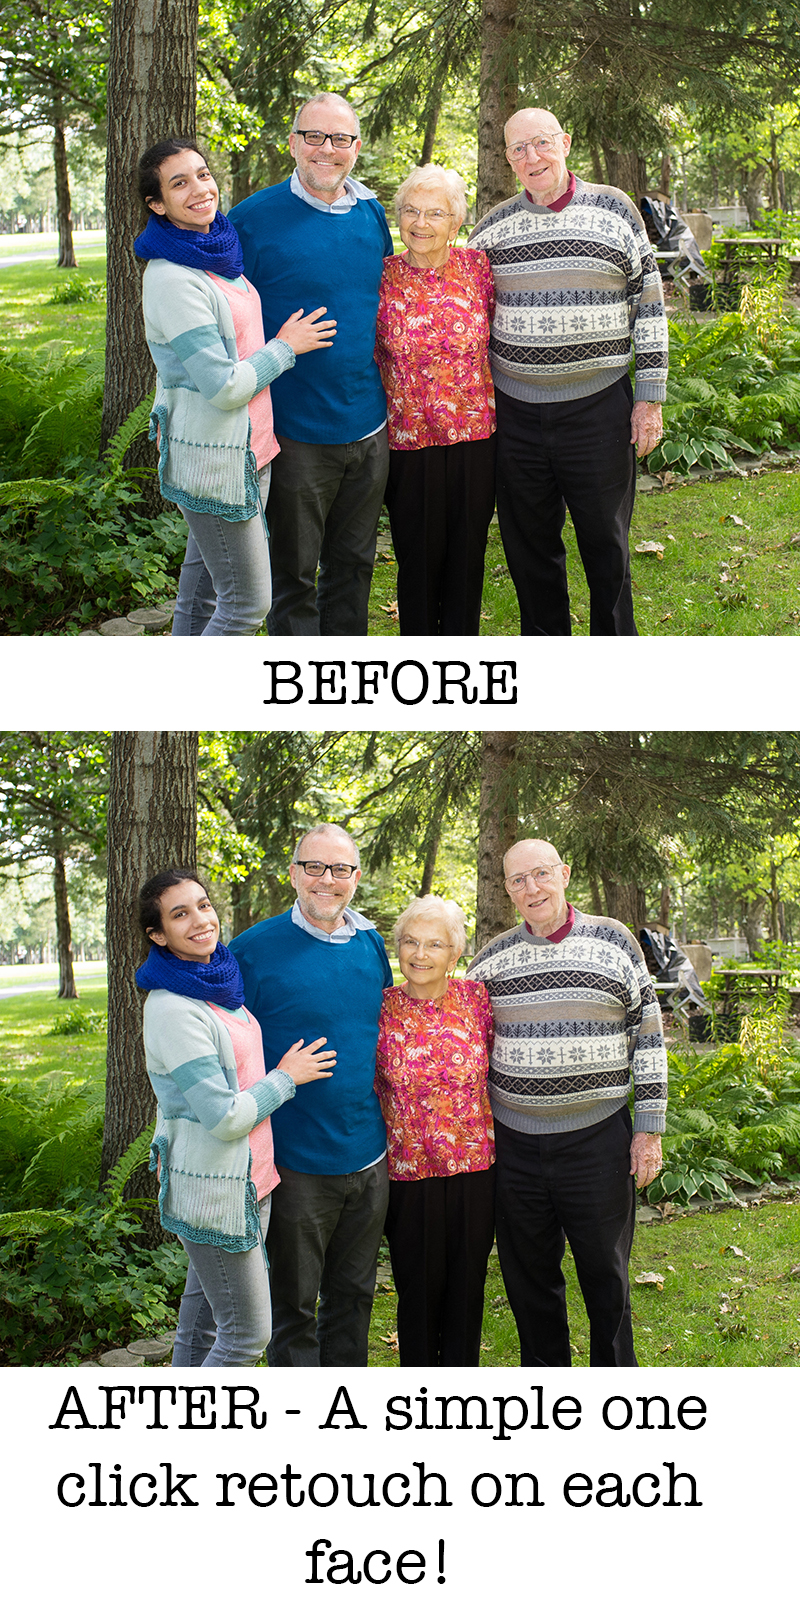 Photograph by Kent DuFault. While not as efficient with group shots- the program is still a time savior for rapid retouching of multiple people in a shot.